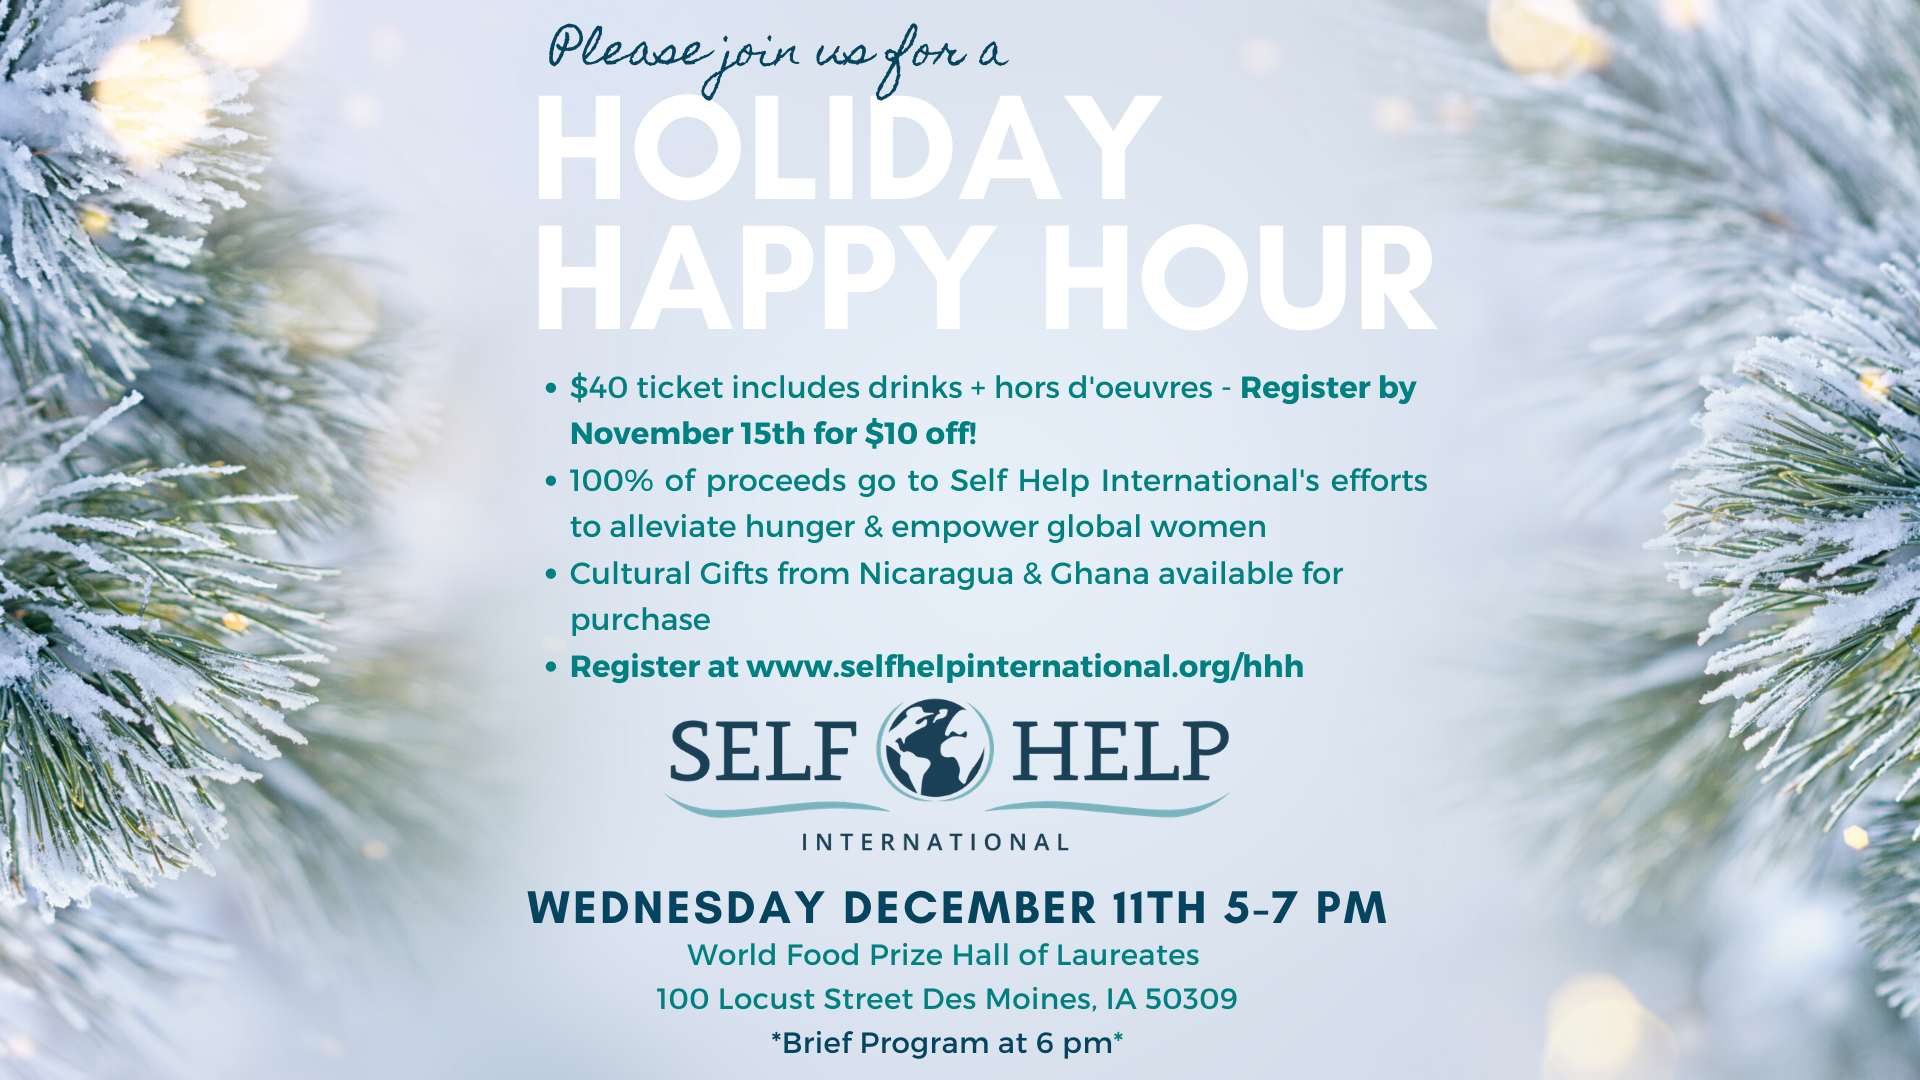 Holiday Happy Hour Registration Open